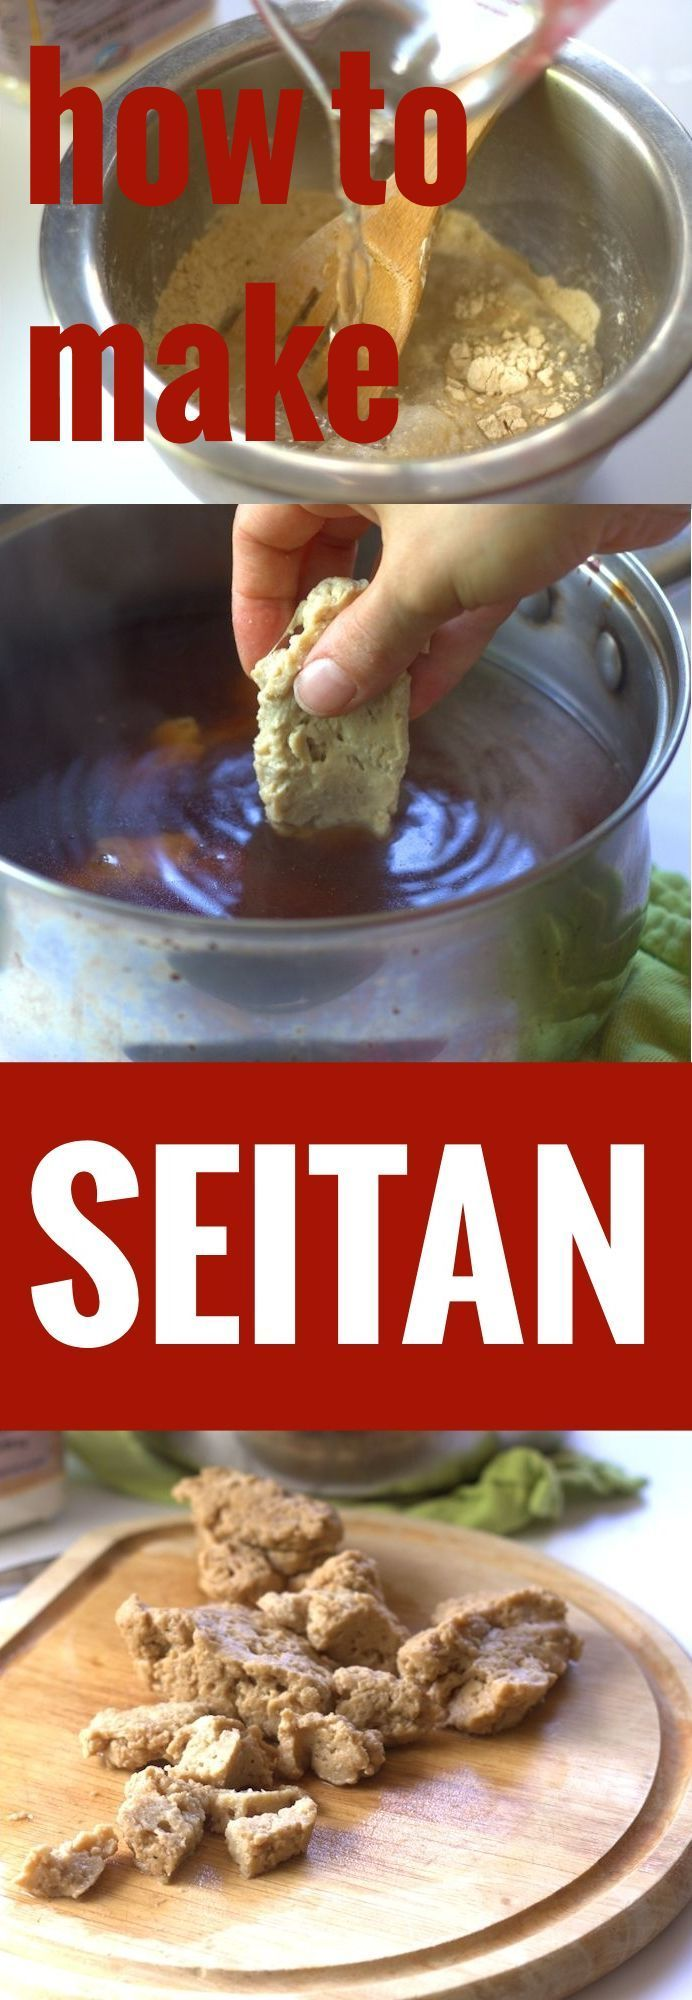 How to Make Seitan #vegan